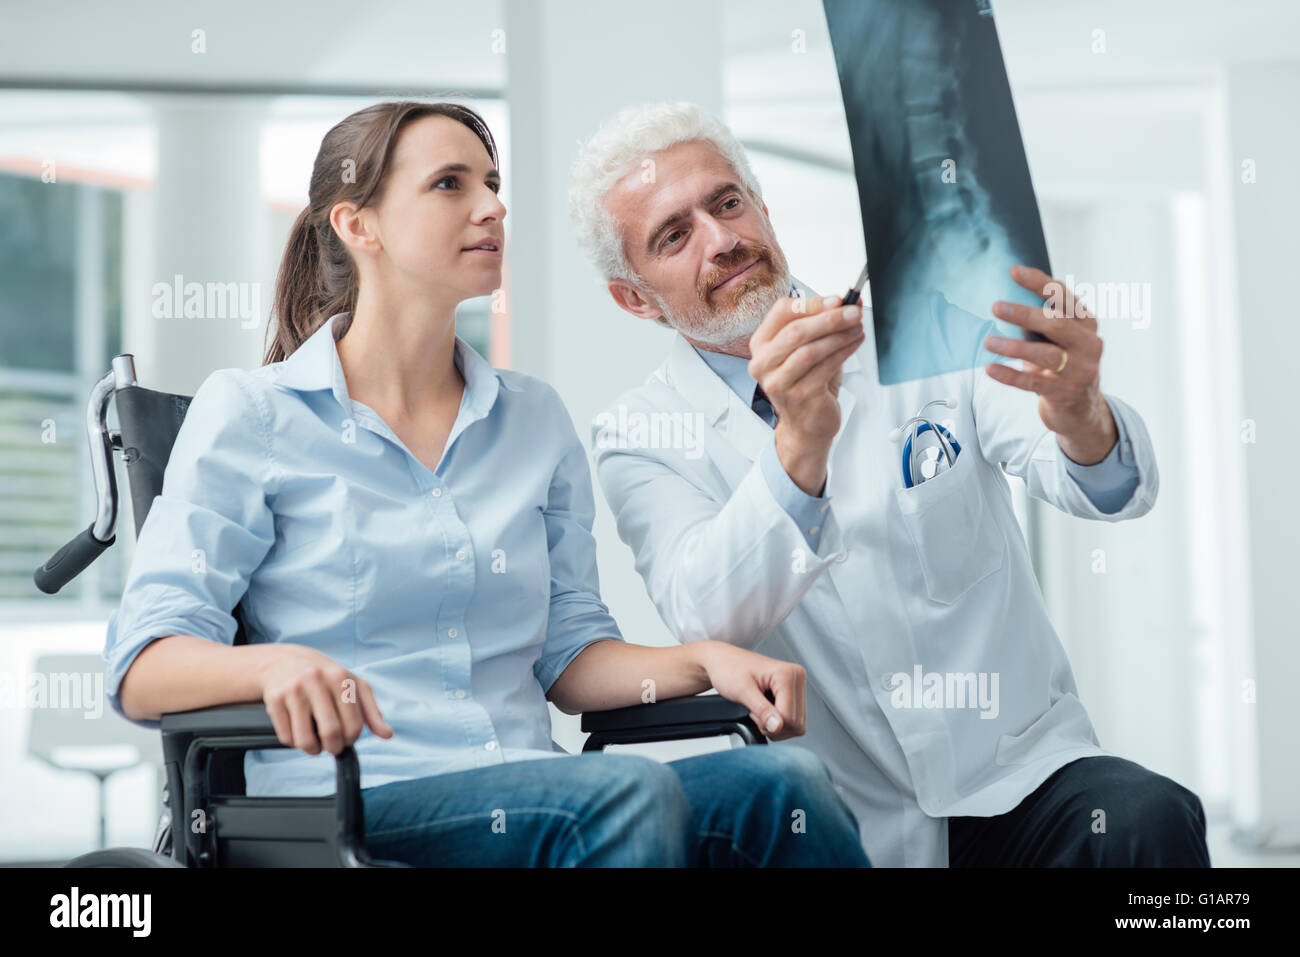 Radiologist examining a woman in wheelchair's x-ray of human spine during a visit at hospital - Stock Image